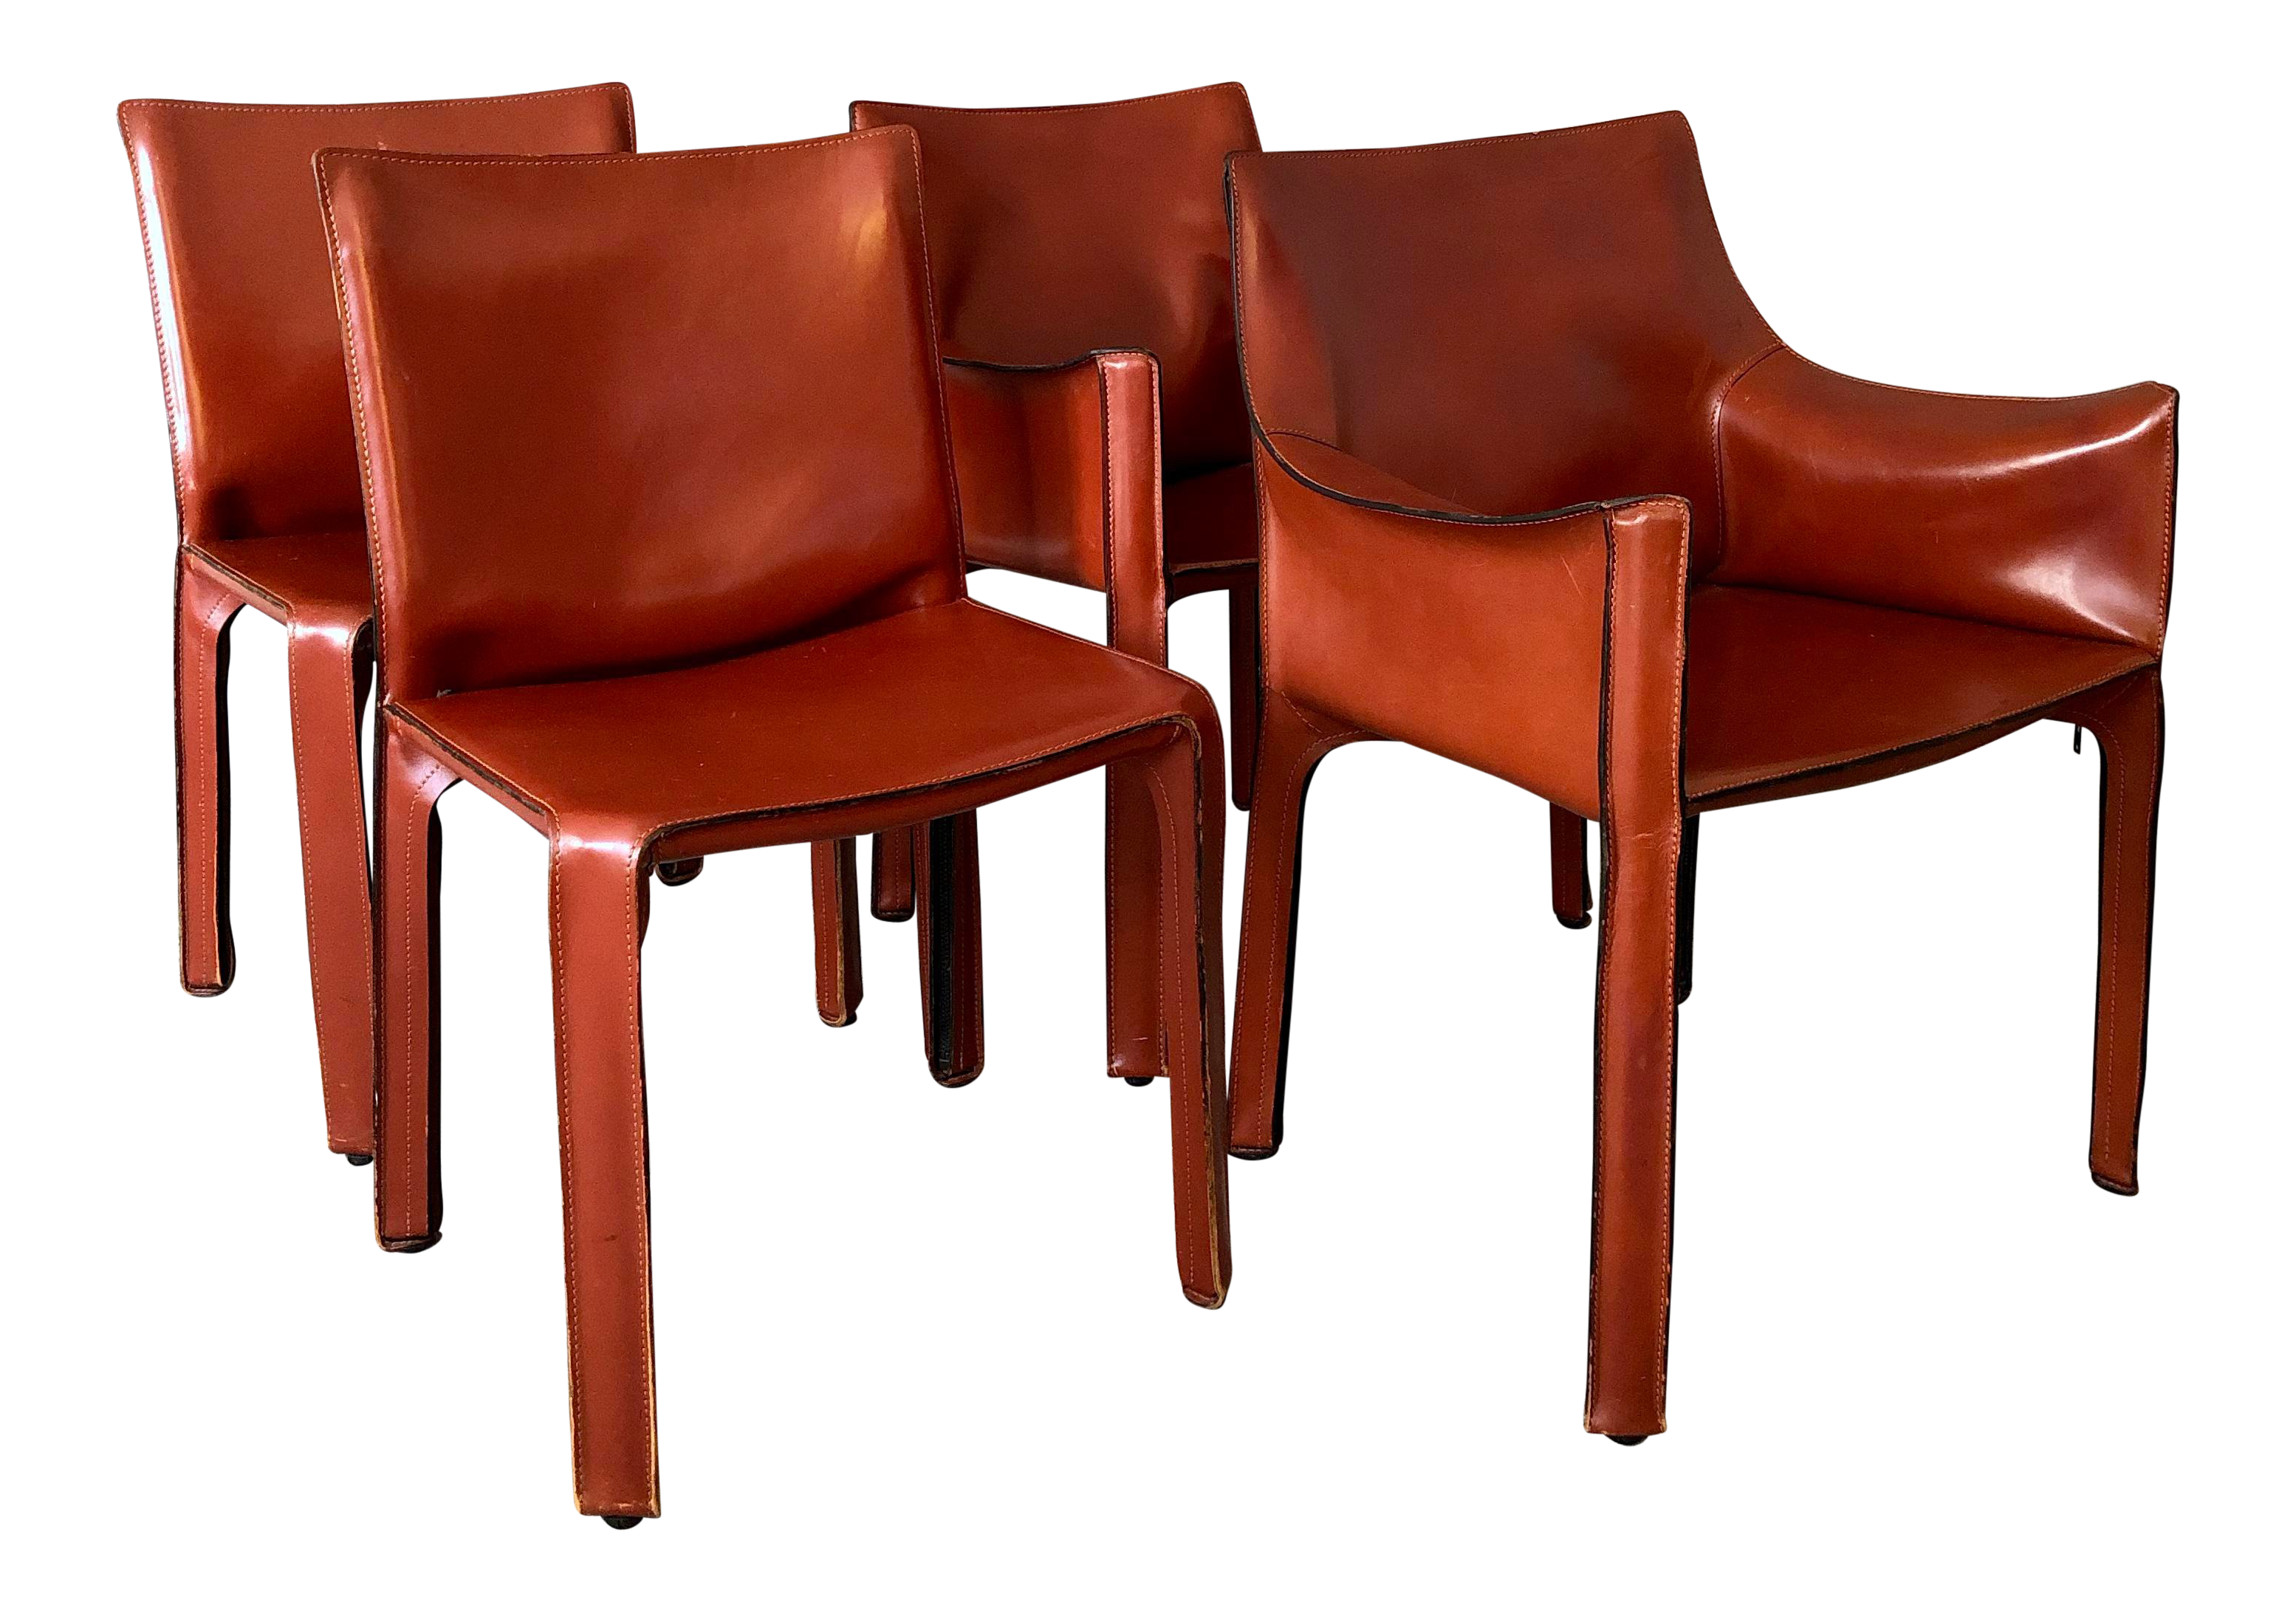 Fantastic 1980S Vintagemario Bellini For Cassina Cab Dining Chairs Set Of 4 Ibusinesslaw Wood Chair Design Ideas Ibusinesslaworg